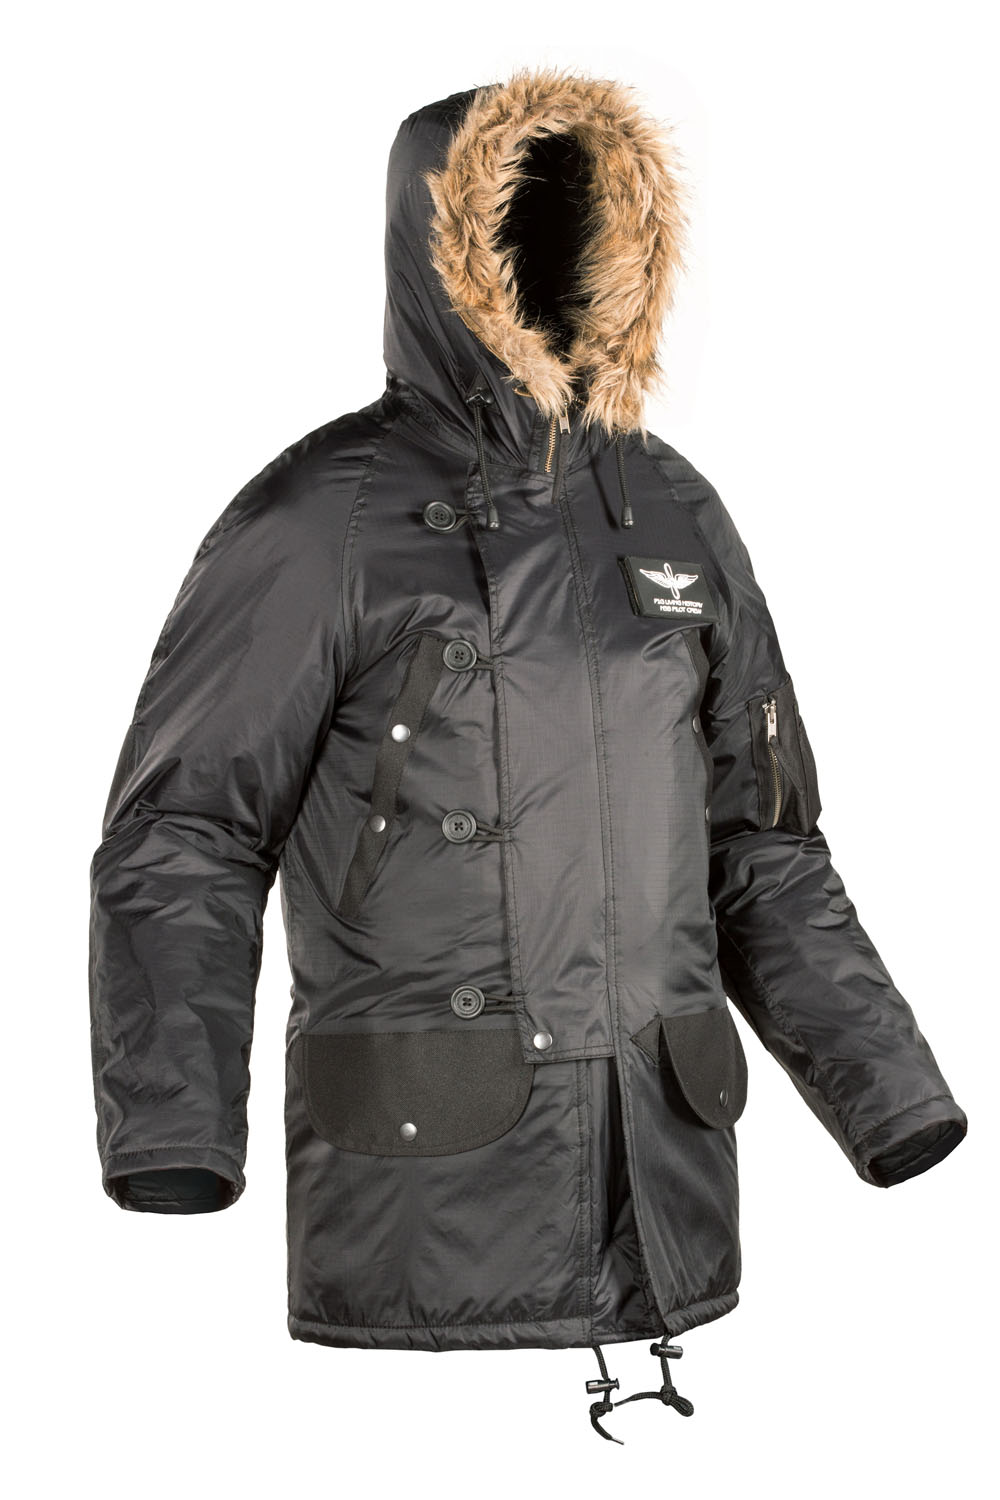 American winter parka N3B